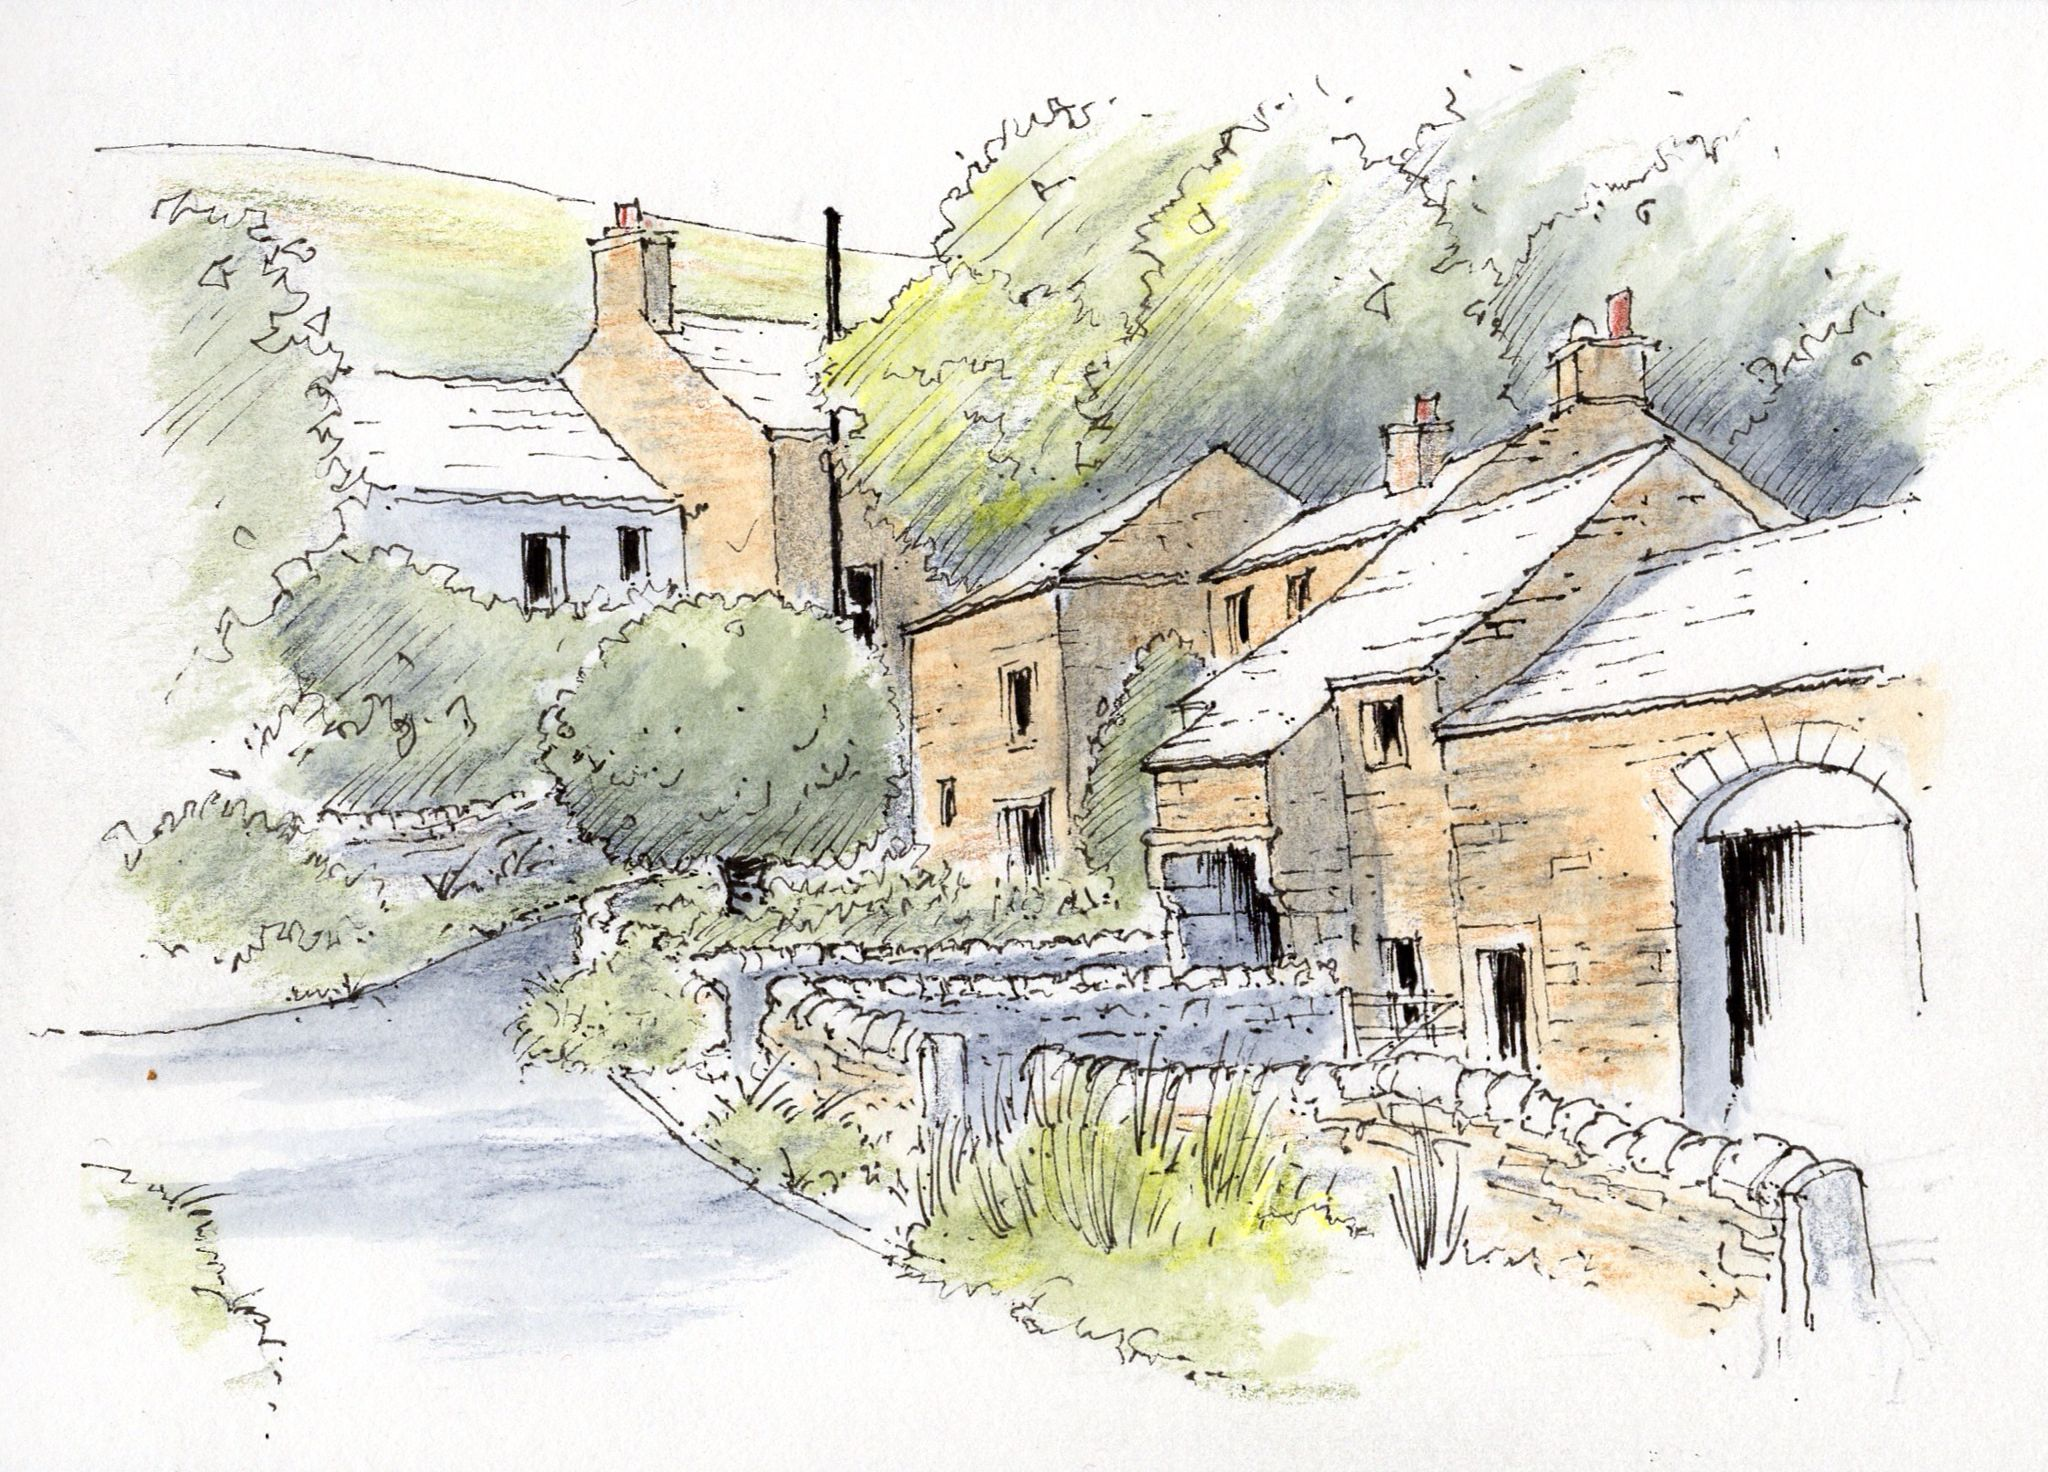 2048x1472 The Village Of Thorpe In The Yorkshire Dales ~ Sketch ~ John